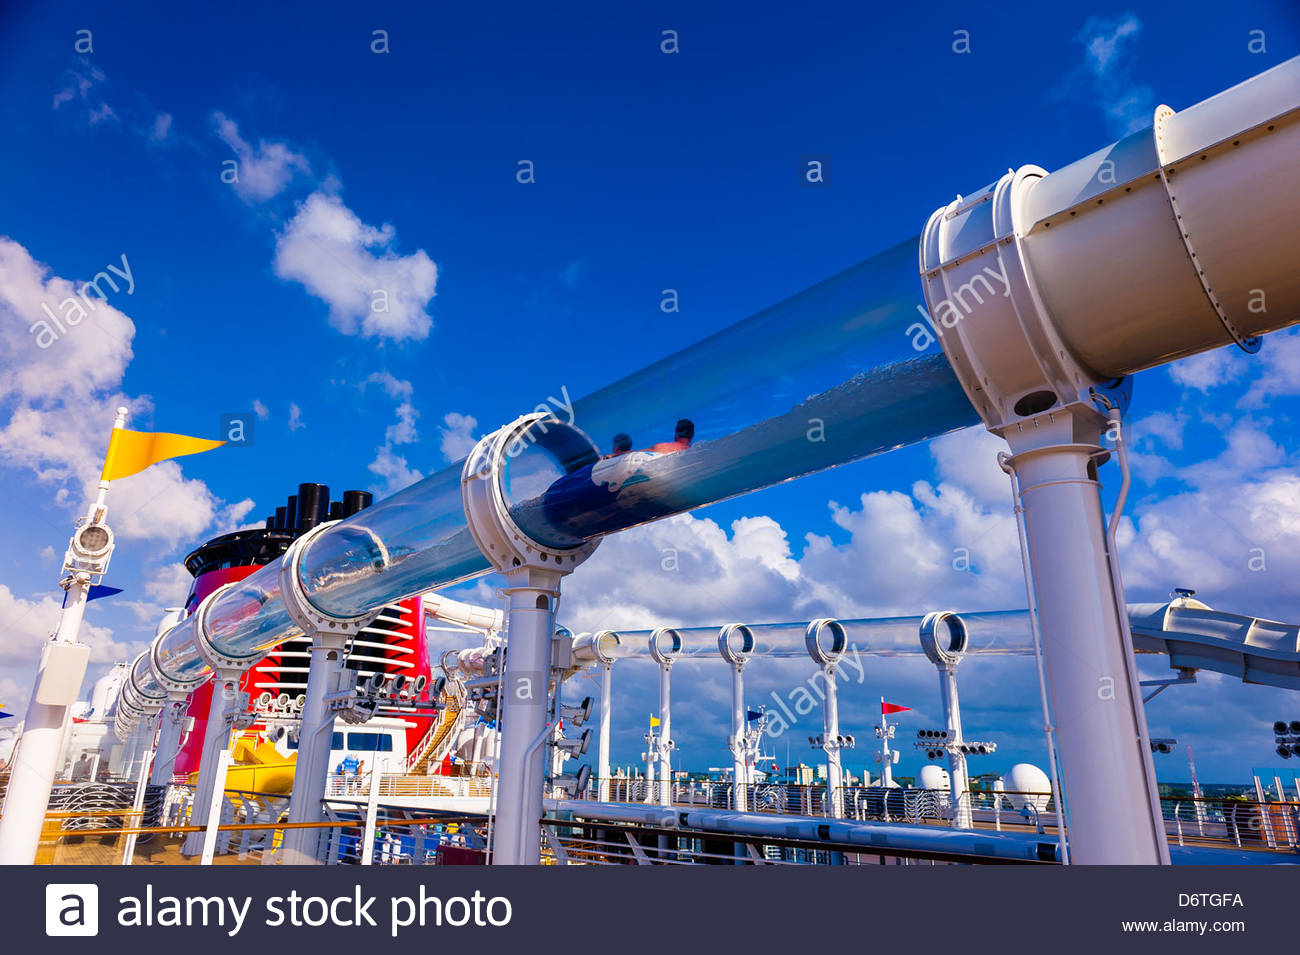 Aquaduck Water Slide Aboard The Cruise Ship Quot Disney Dream